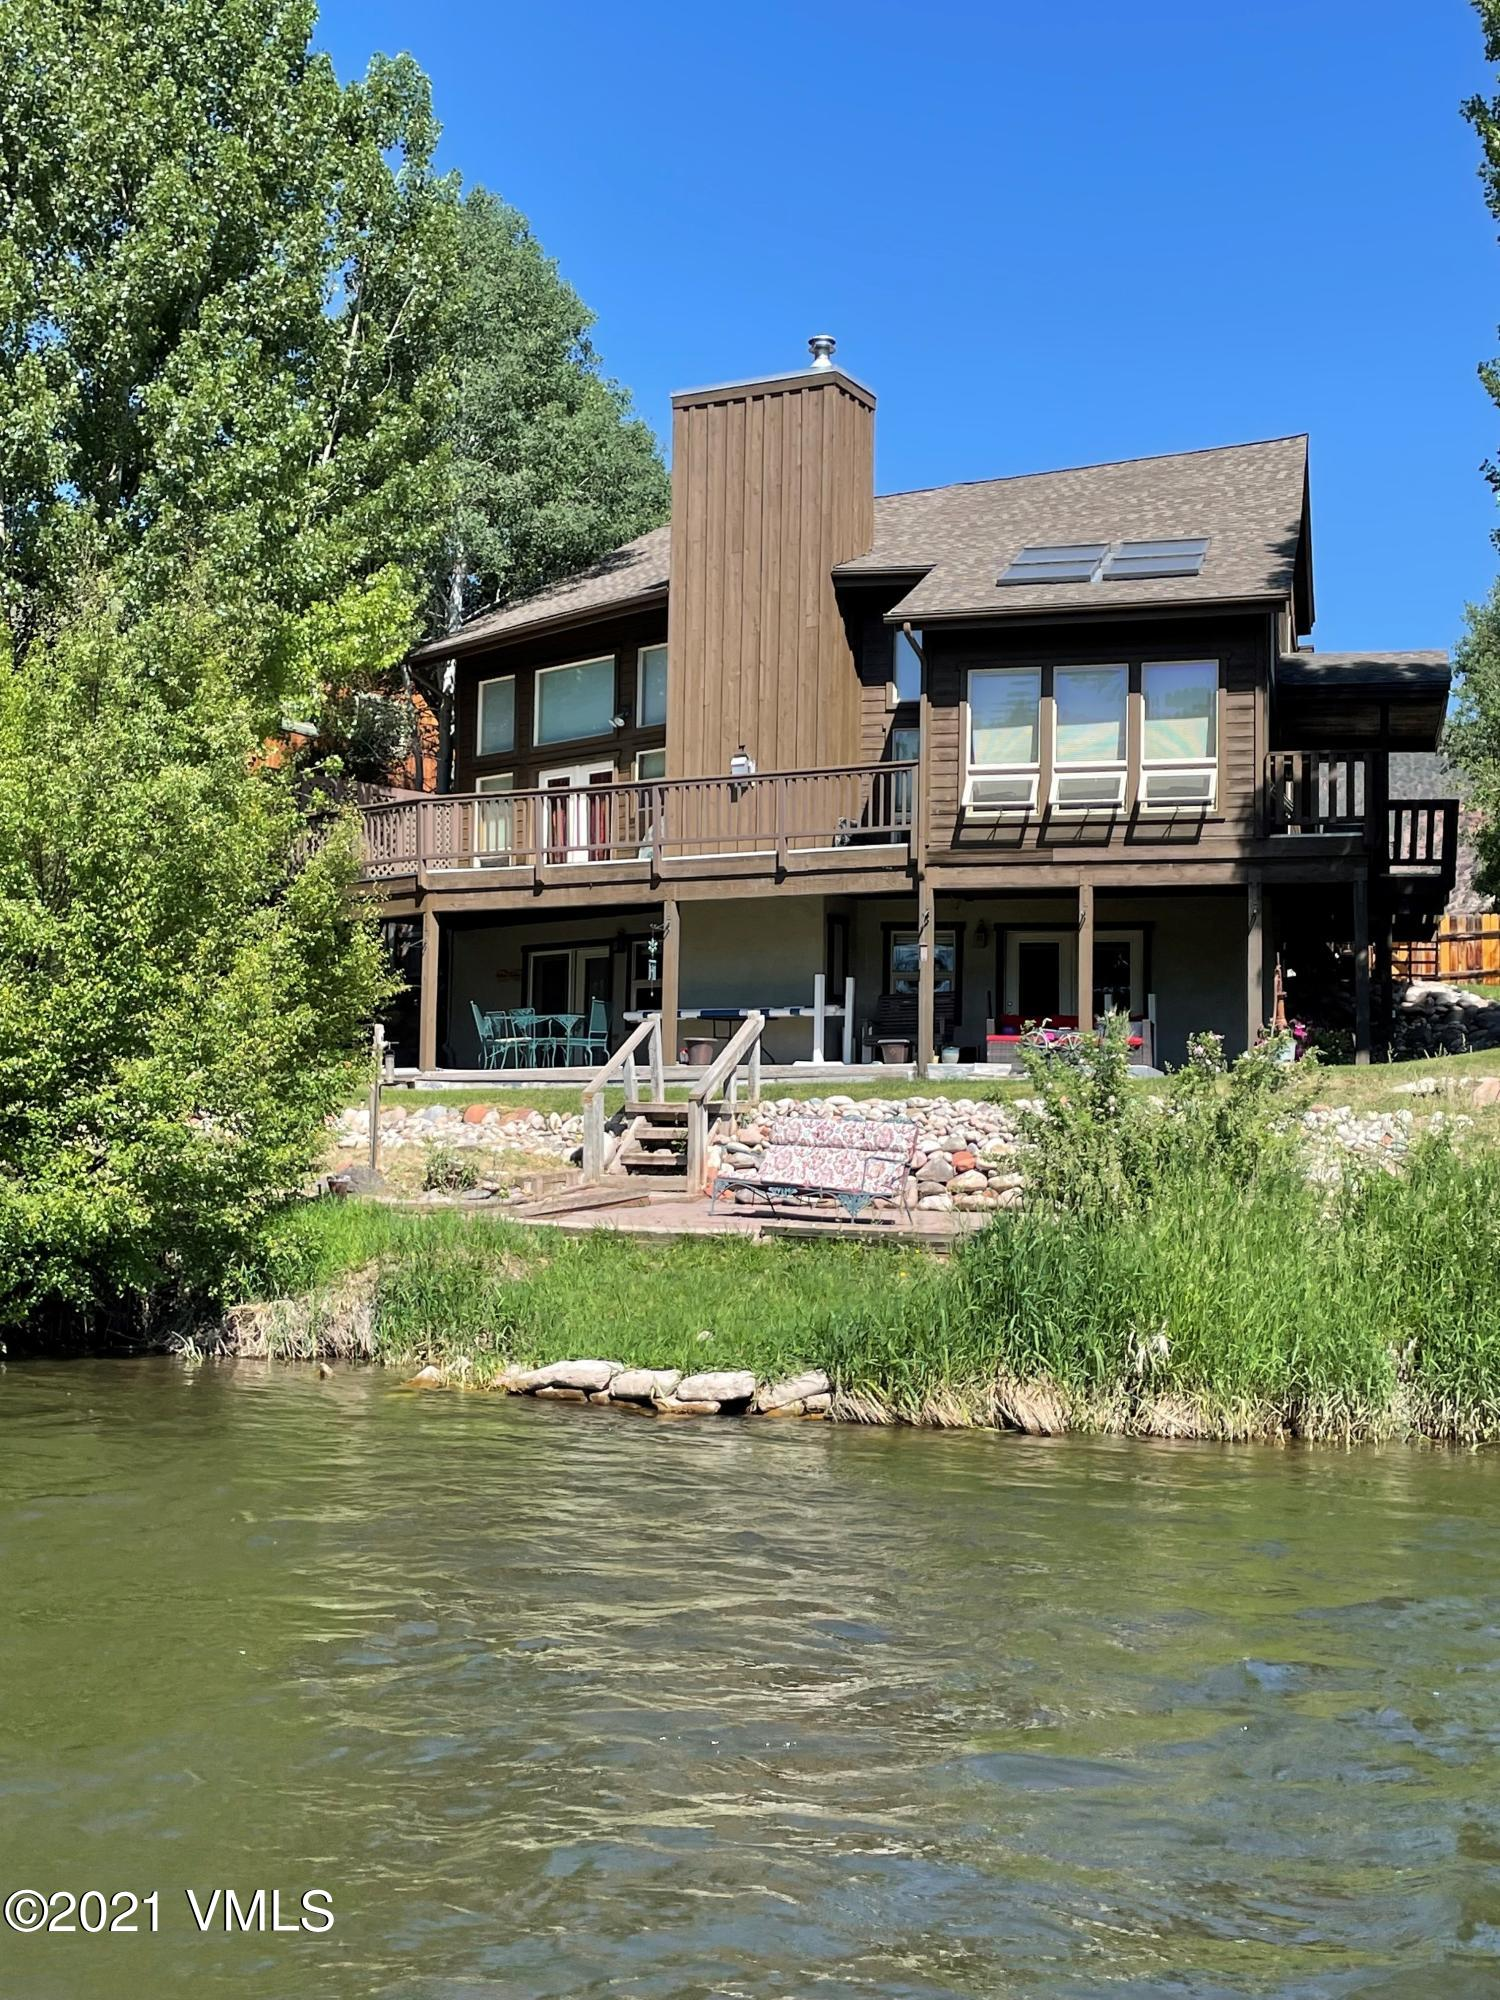 3400 sq.ft. Single Family on the Eagle River! Incredible setting and mountain views. The main floor features a large great room, with tons of natural light, vaulted ceilings and a floor to ceiling river rock fireplace, a sun- room and large deck overlooking the river, a bedroom and bath.  2 beds & bath on 2nd floor.  Lower level-1 bed-1bath, full kitchen with lock-off potential.  Lots of Recent upgrades! New Roof, New Water System, New LVT Flooring on lower level.   Offered at $835,000